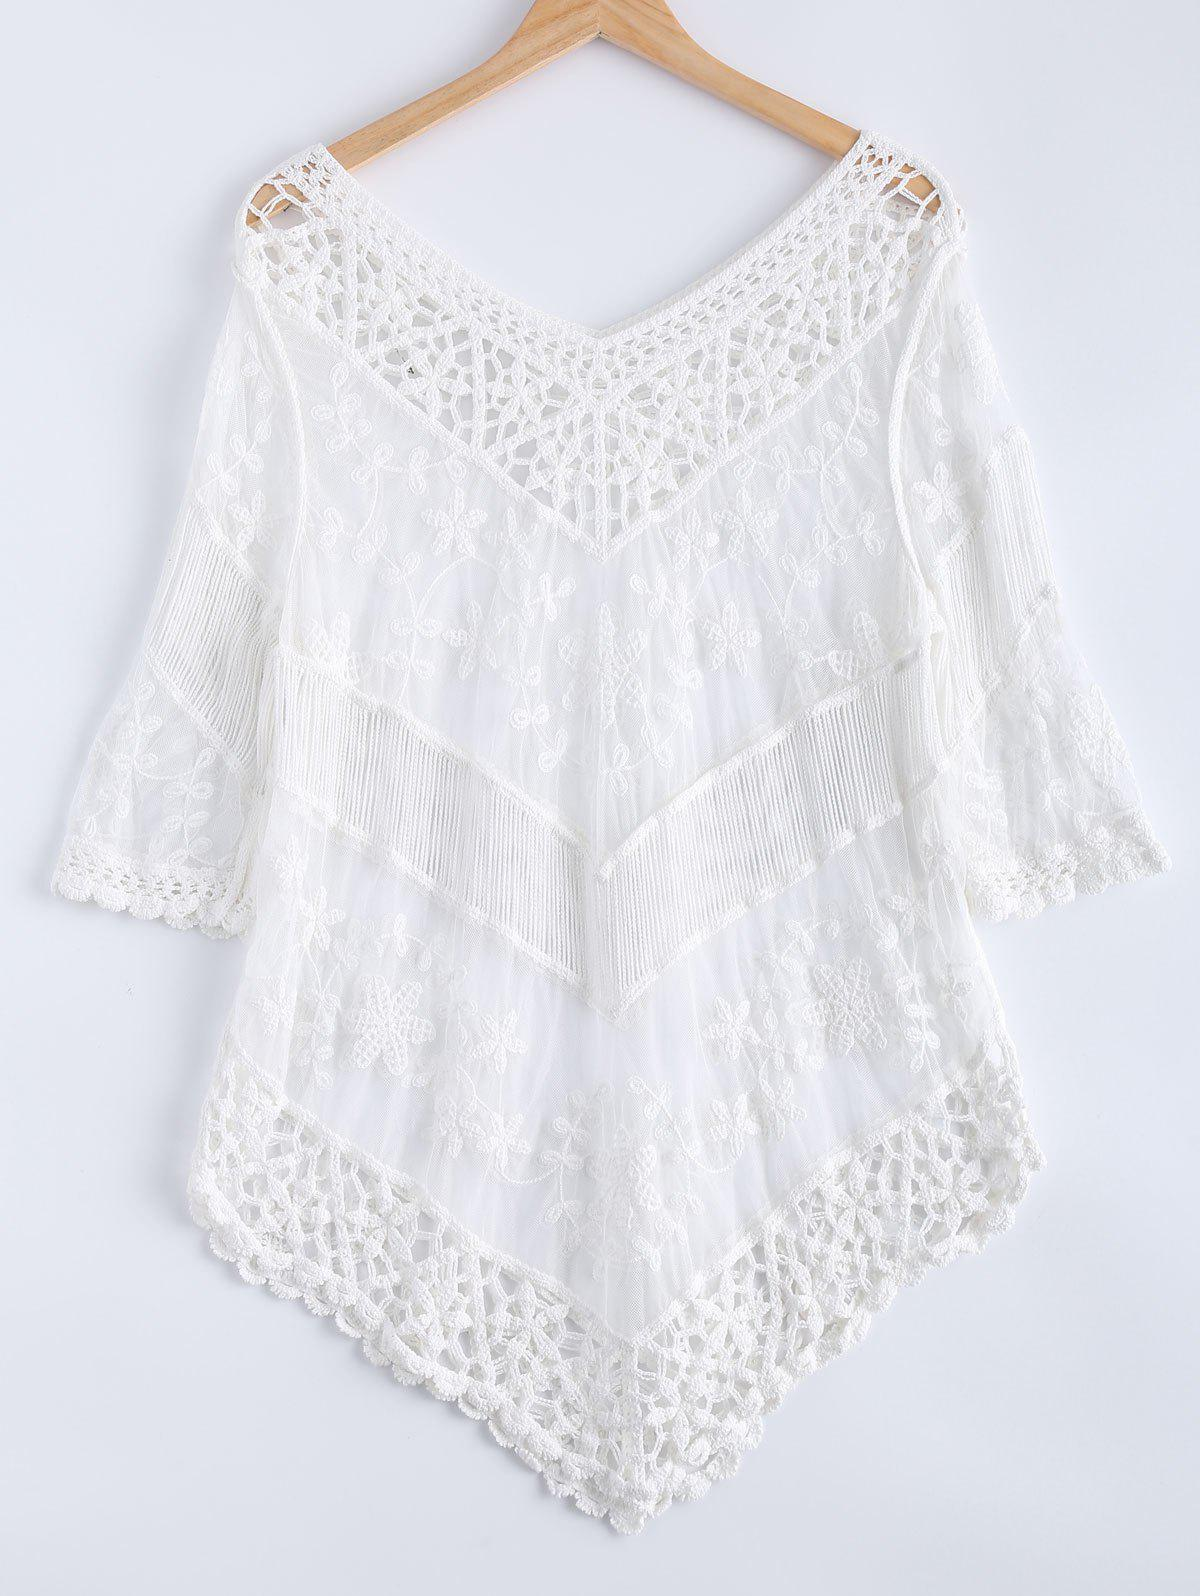 Crochet V Neck Lace 3/4 Sleeve DressWomen<br><br><br>Size: ONE SIZE(FIT SIZE XS TO M)<br>Color: WHITE